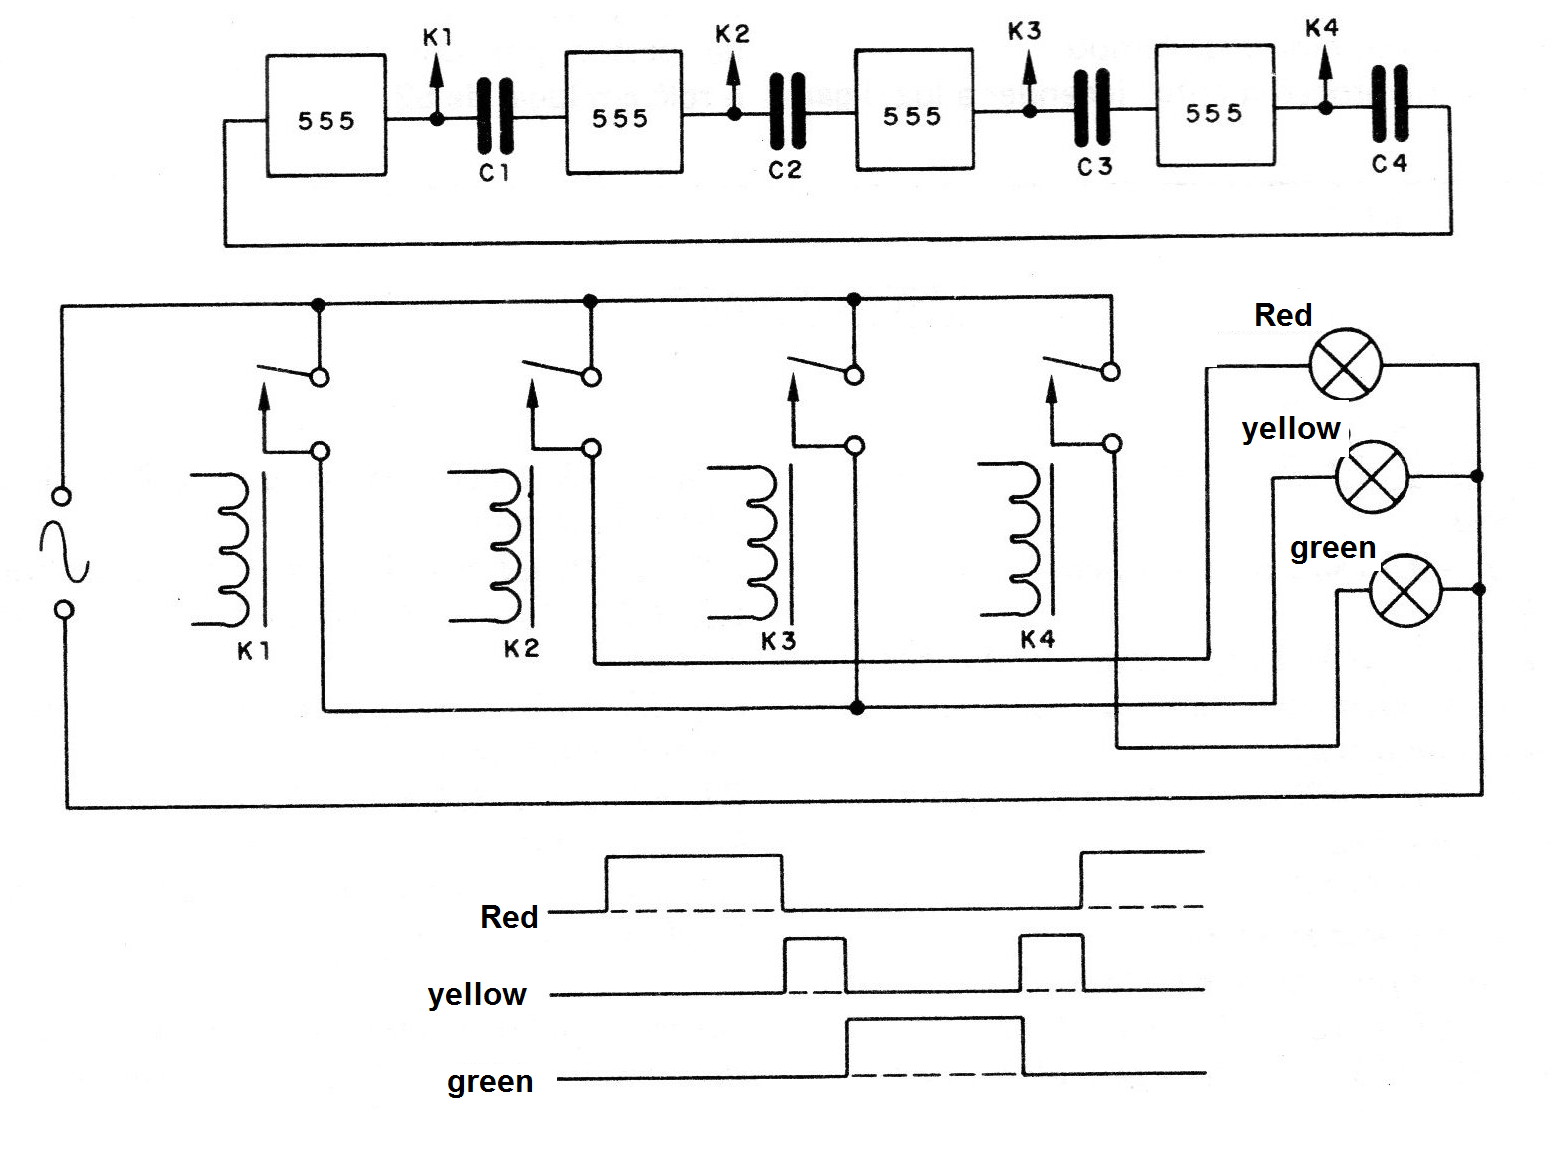 Sequential Automation Device Mec107 Traffic Light Circuit Pictures Figure 5 With Stages